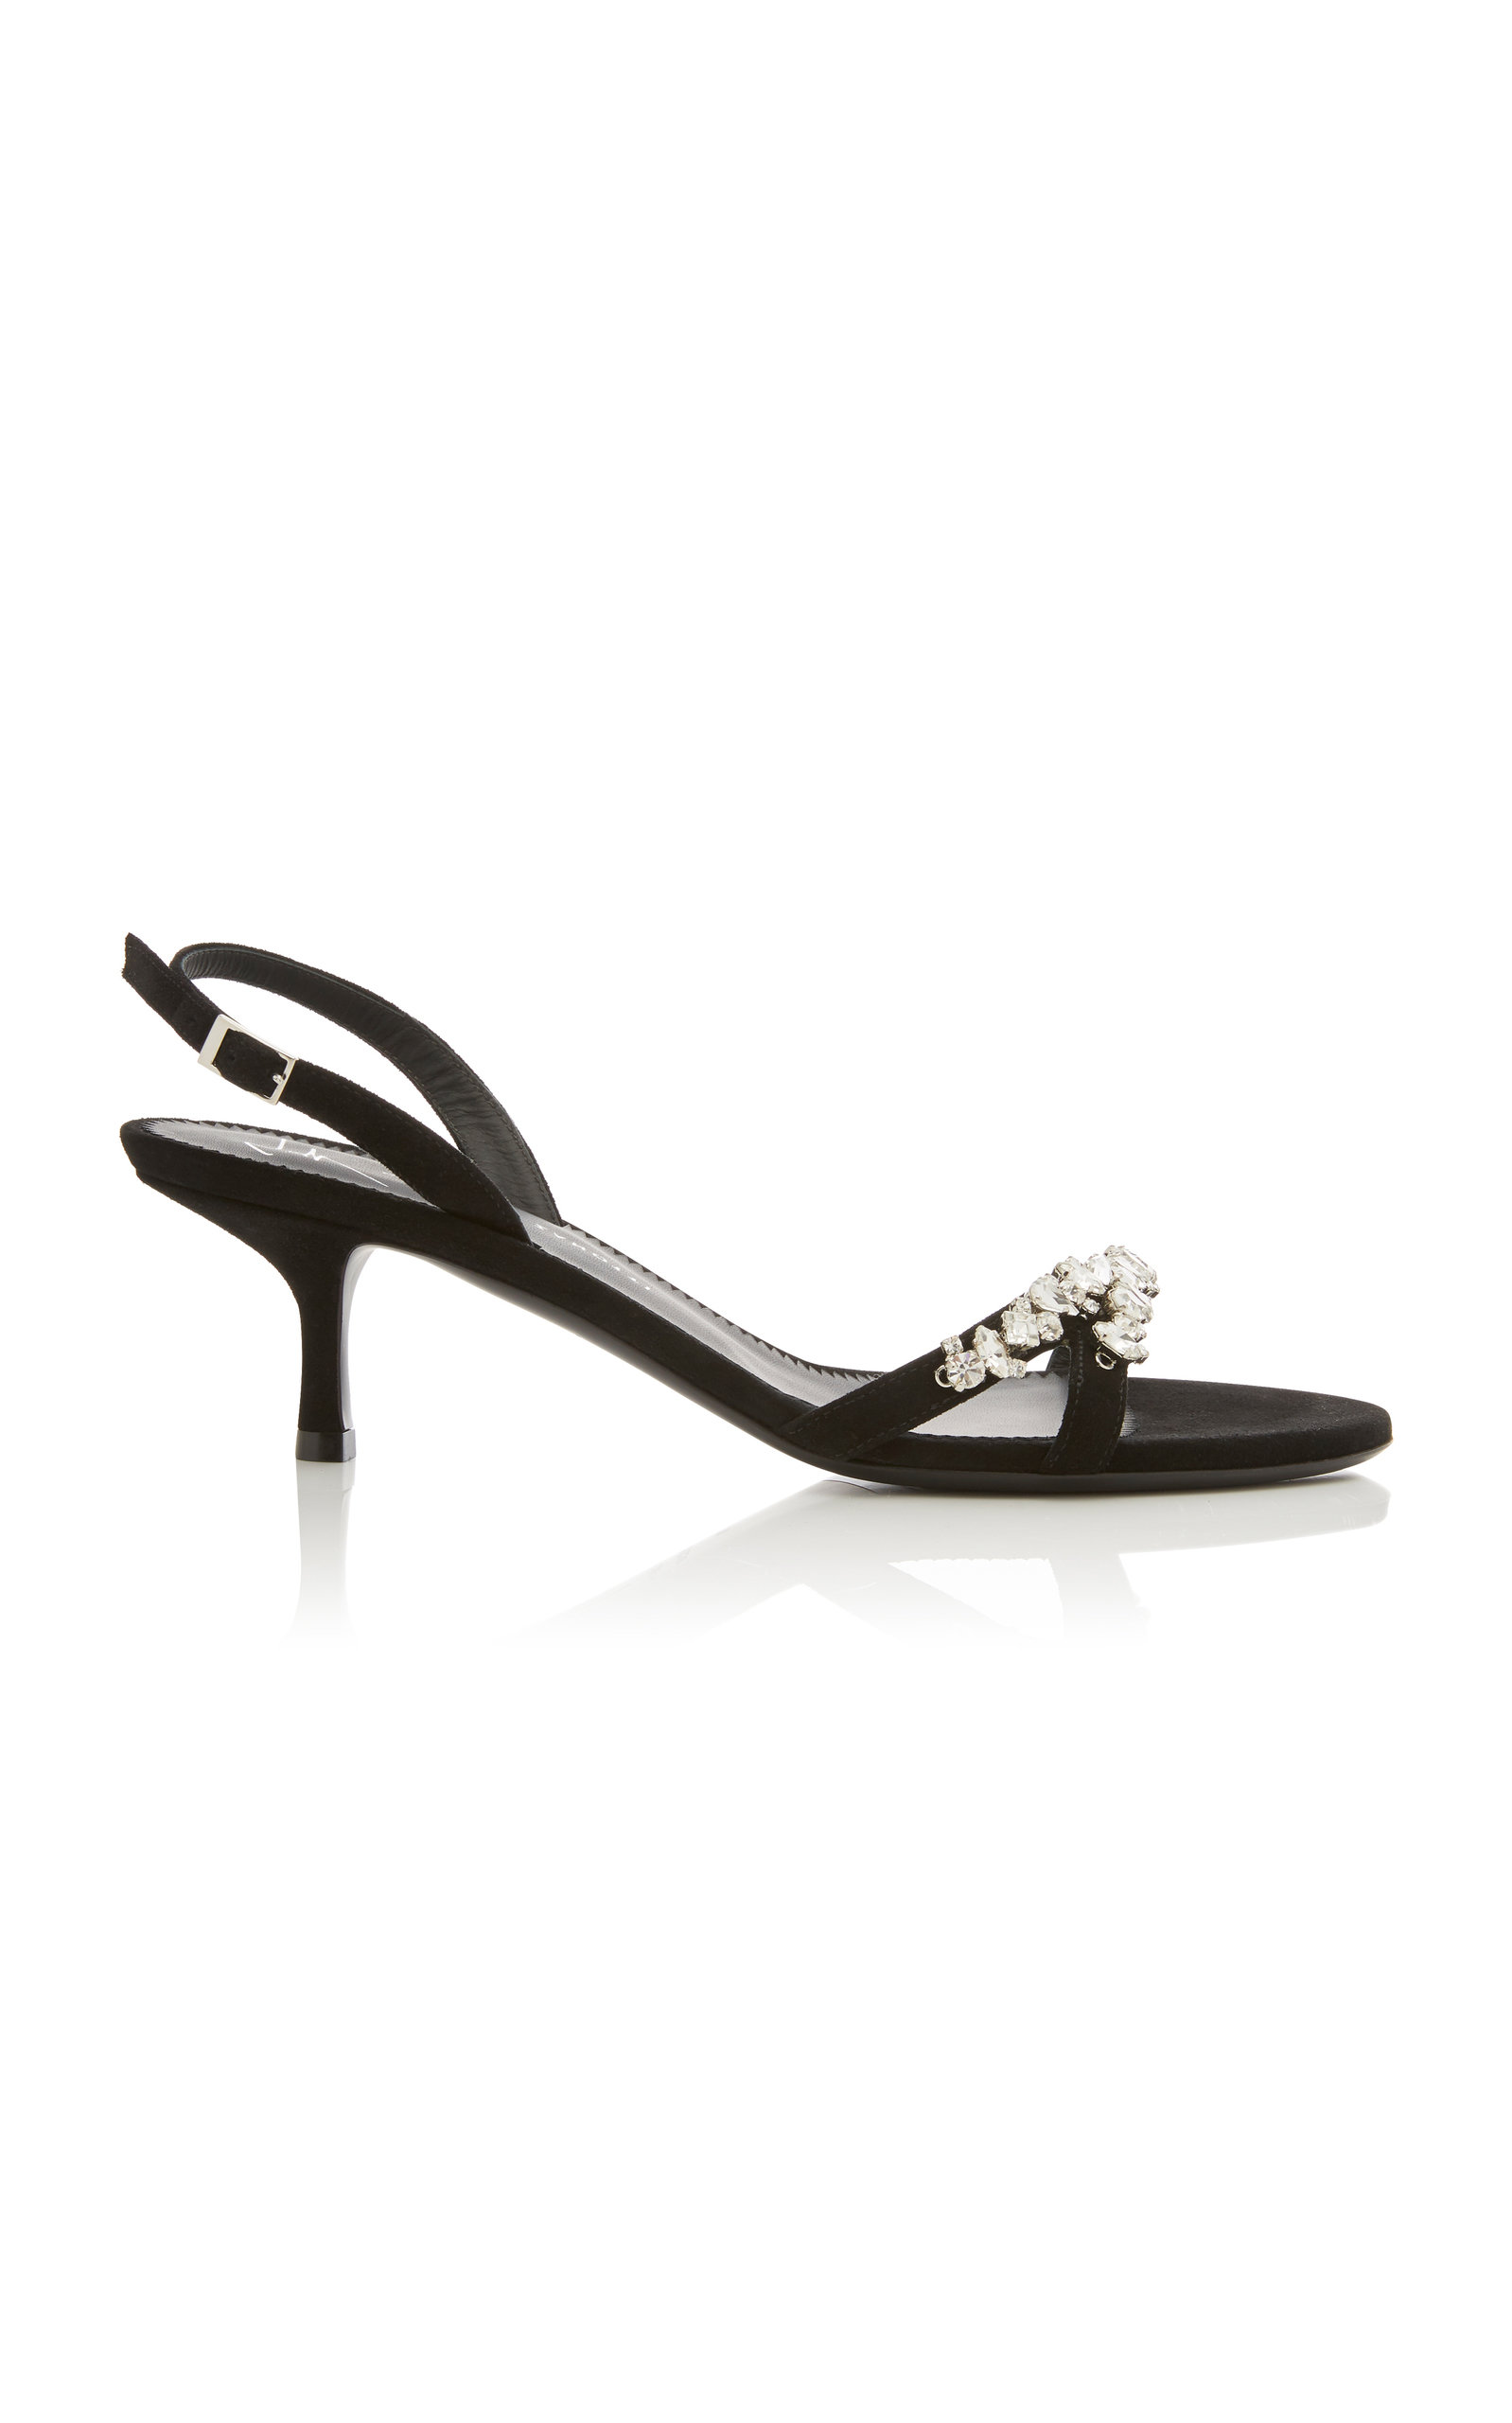 ad854ab9ad8a0d Giuseppe Zanotti Alien Crystal-Embellished Suede Slingback Sandals In Black